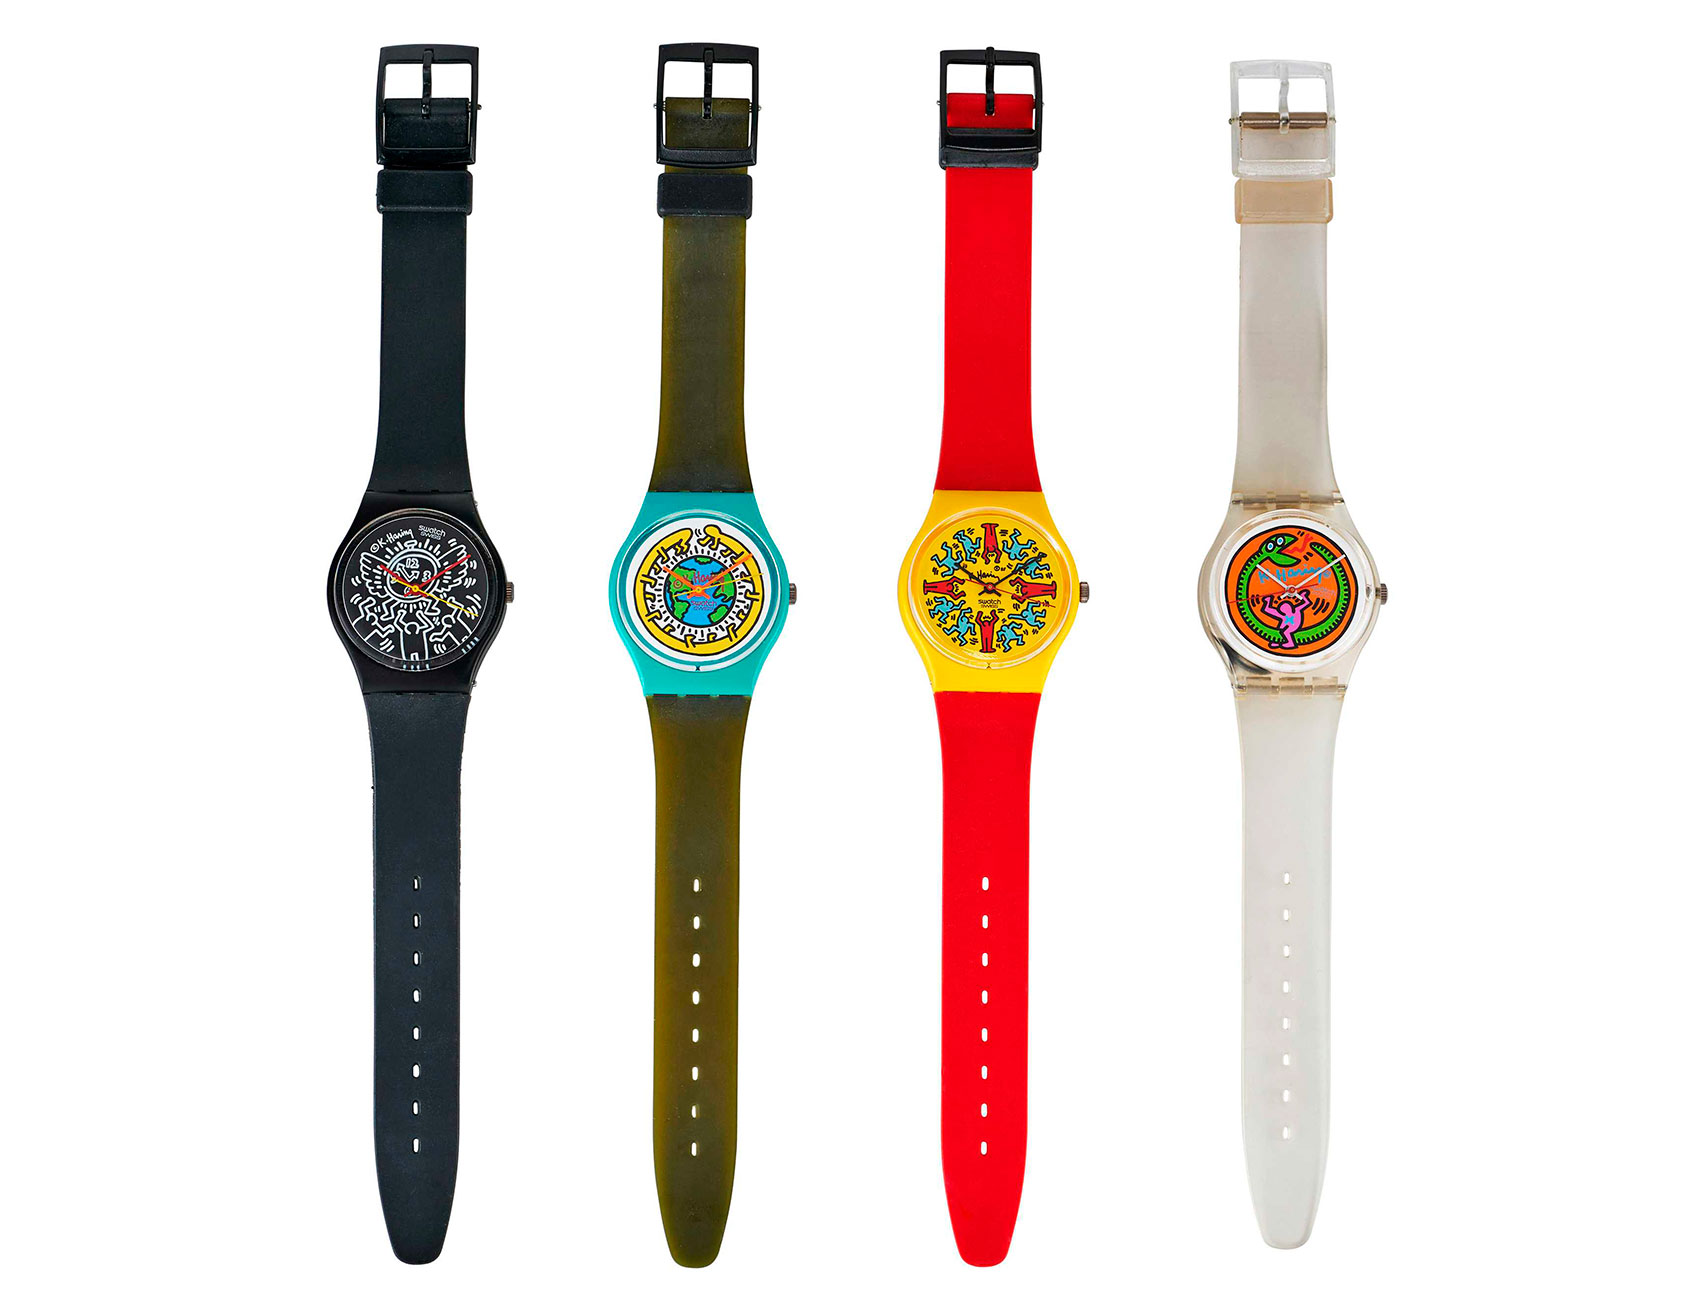 Swatch Quartz Swiss Watch Luxury